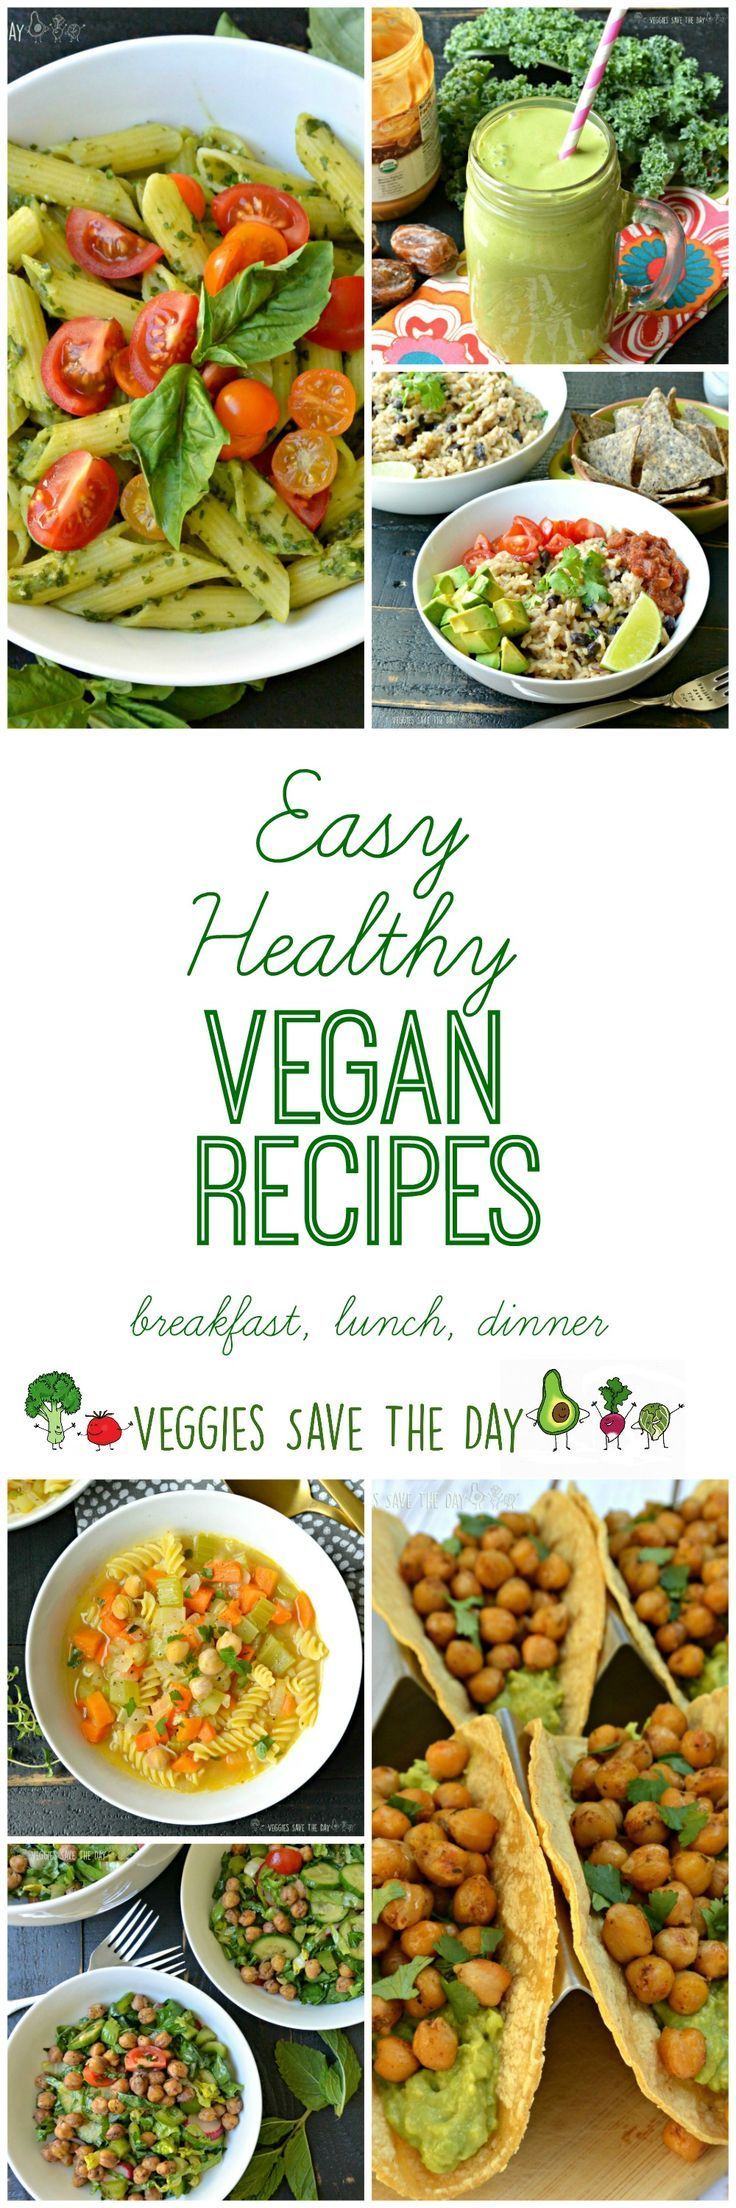 From green smoothies to stir fry, it's easy eating plant-based with this collection of healthy vegan recipes for breakfast, lunch, and dinner.